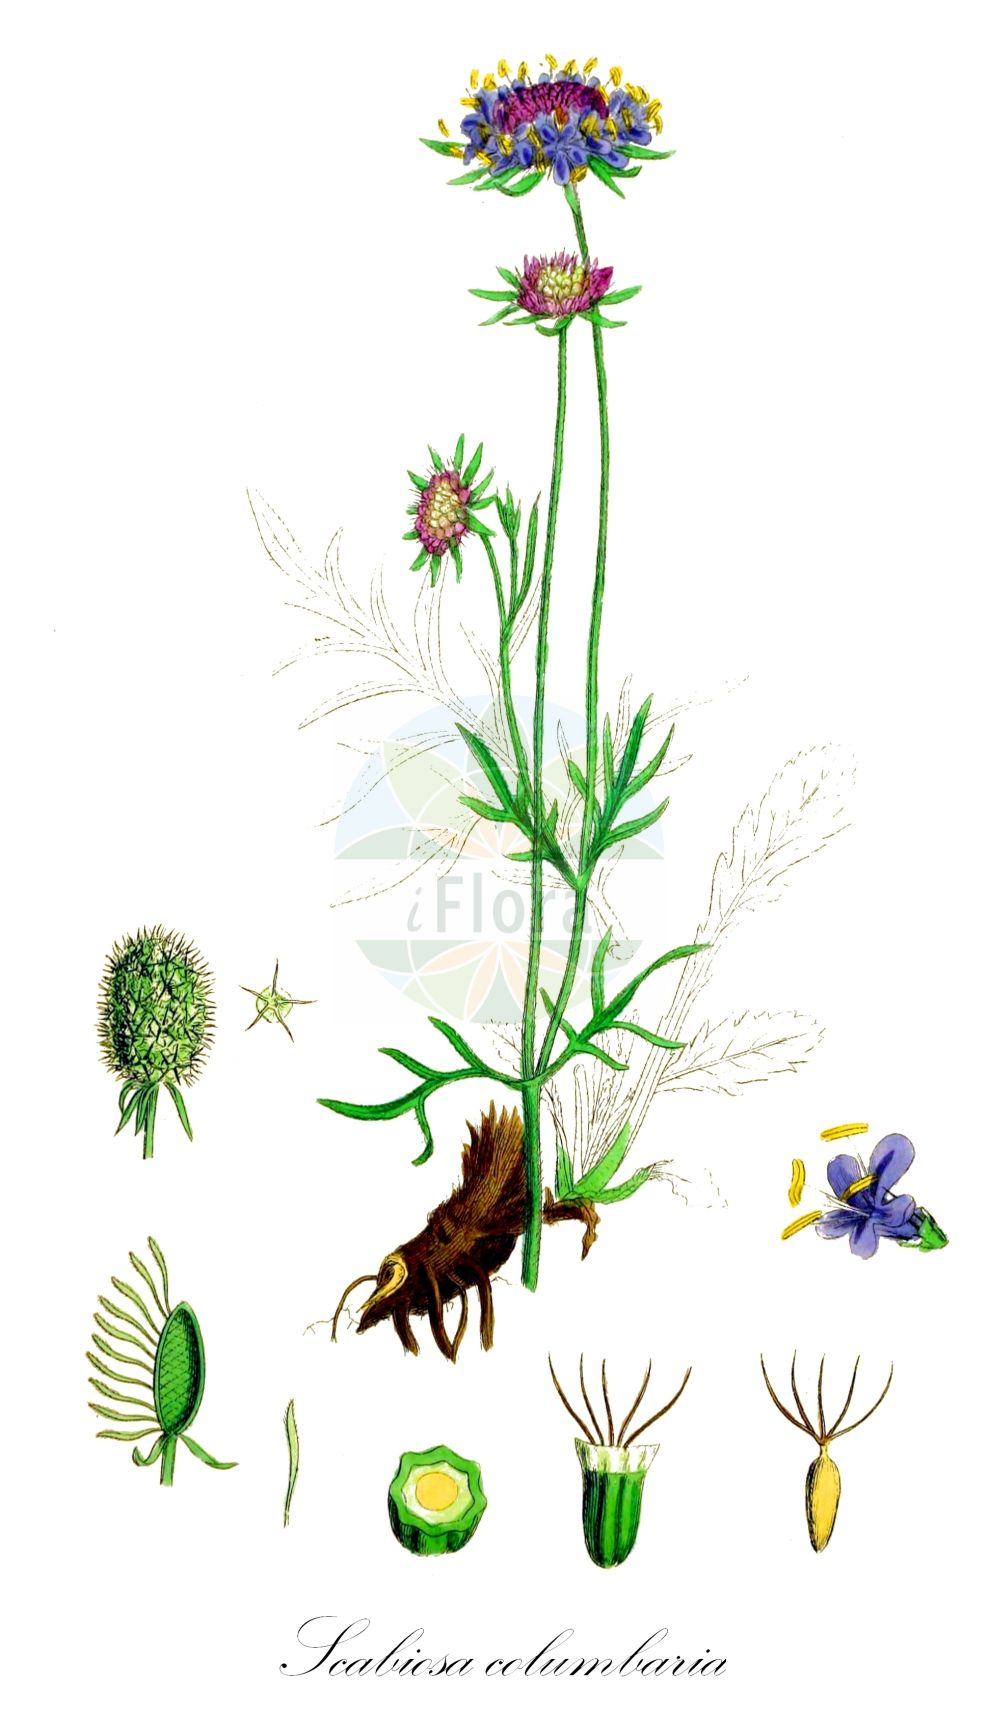 Historische Abbildung von Scabiosa columbaria (Tauben-Skabiose - Small Scabious). Das Bild zeigt Blatt, Bluete, Frucht und Same. ---- Historical Drawing of Scabiosa columbaria (Tauben-Skabiose - Small Scabious).The image is showing leaf, flower, fruit and seed.(Scabiosa columbaria,Tauben-Skabiose,Small Scabious,Scabiosa affinis,Scabiosa amoena,Scabiosa angulata,Scabiosa banatica,Scabiosa ceratophylla,Scabiosa columnae,Scabiosa communis,,Dove Scabious,Dove Pincushions,Scabiosa,Skabiose,Scabious,Caprifoliaceae,Geissblattgewaechse,Honeysuckle family,Blatt,Bluete,Frucht,Same,leaf,flower,fruit,seed,Sowerby (1790-1813))